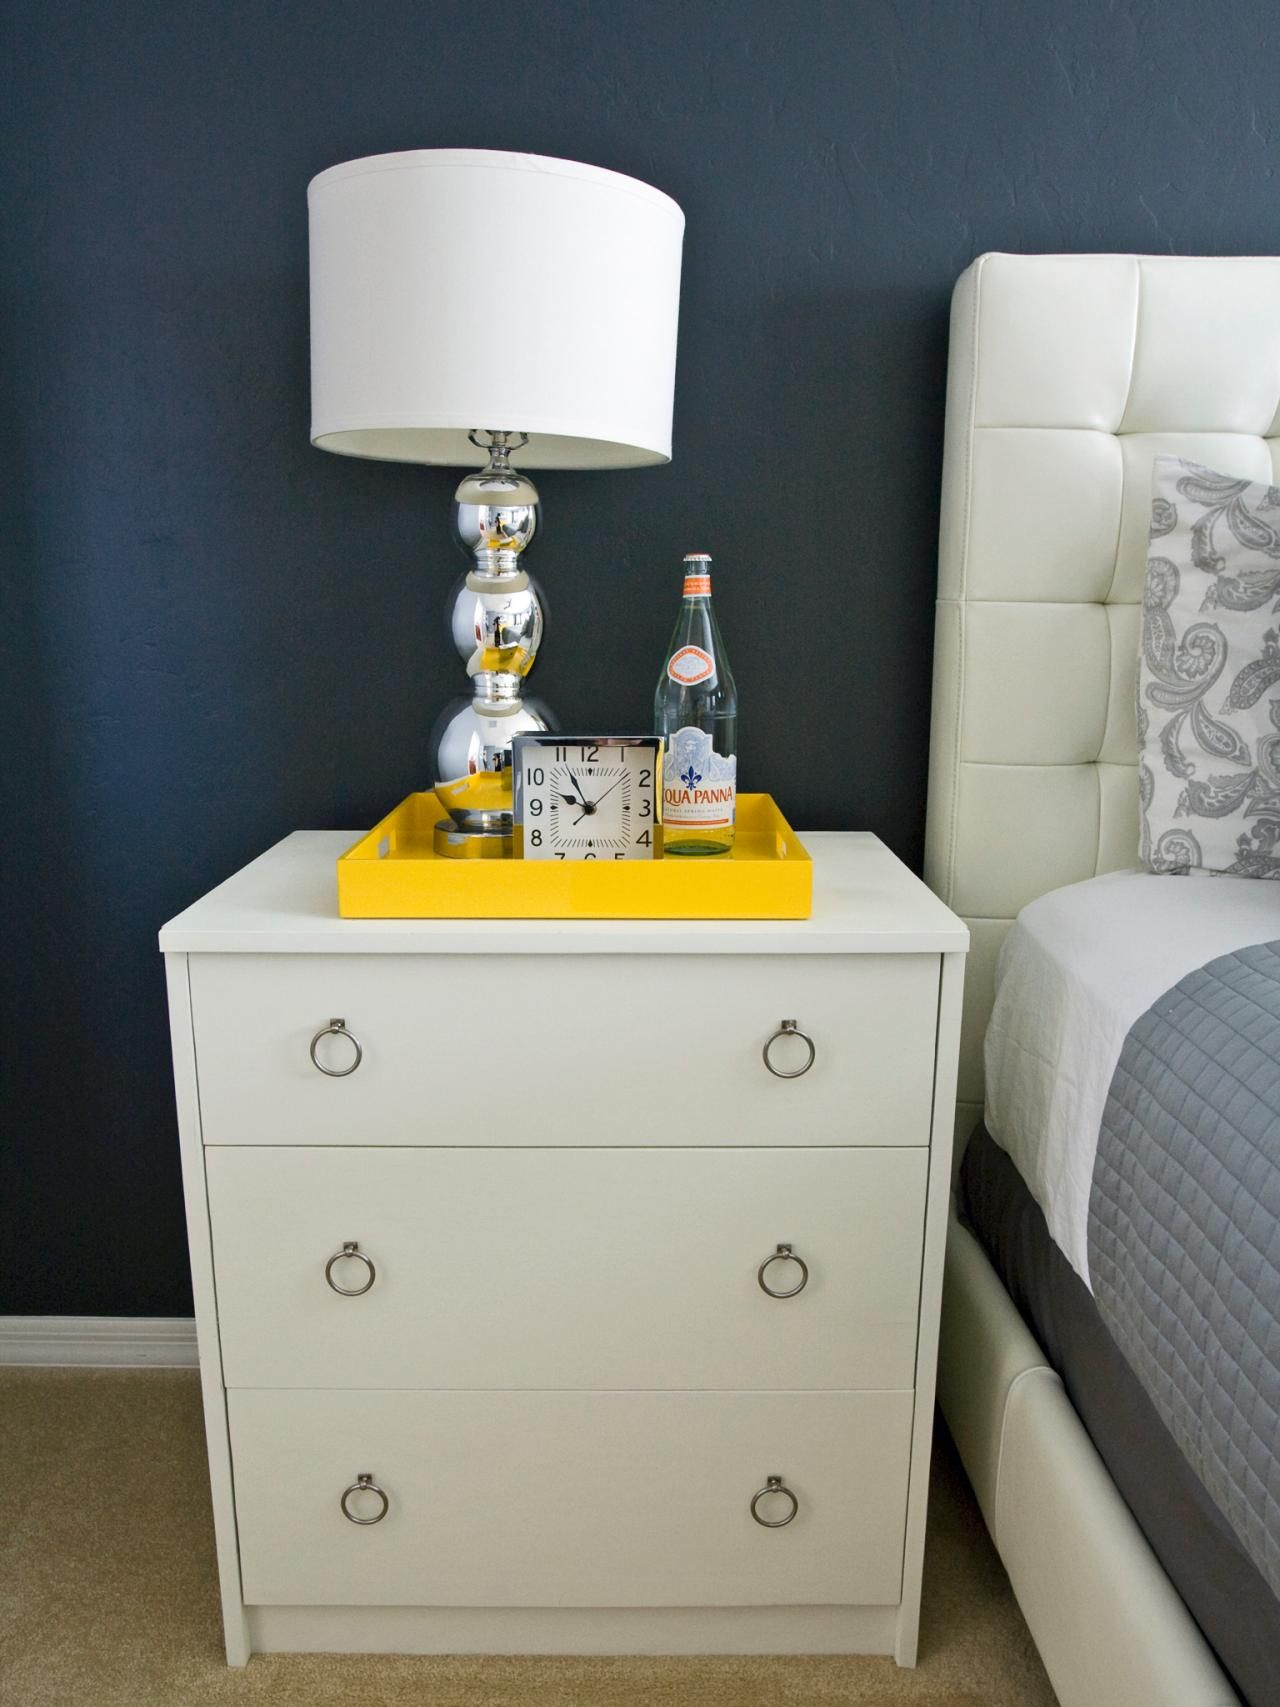 Tips For A Clutter Free Bedroom Nightstand - Bedroom Decorating Ideas